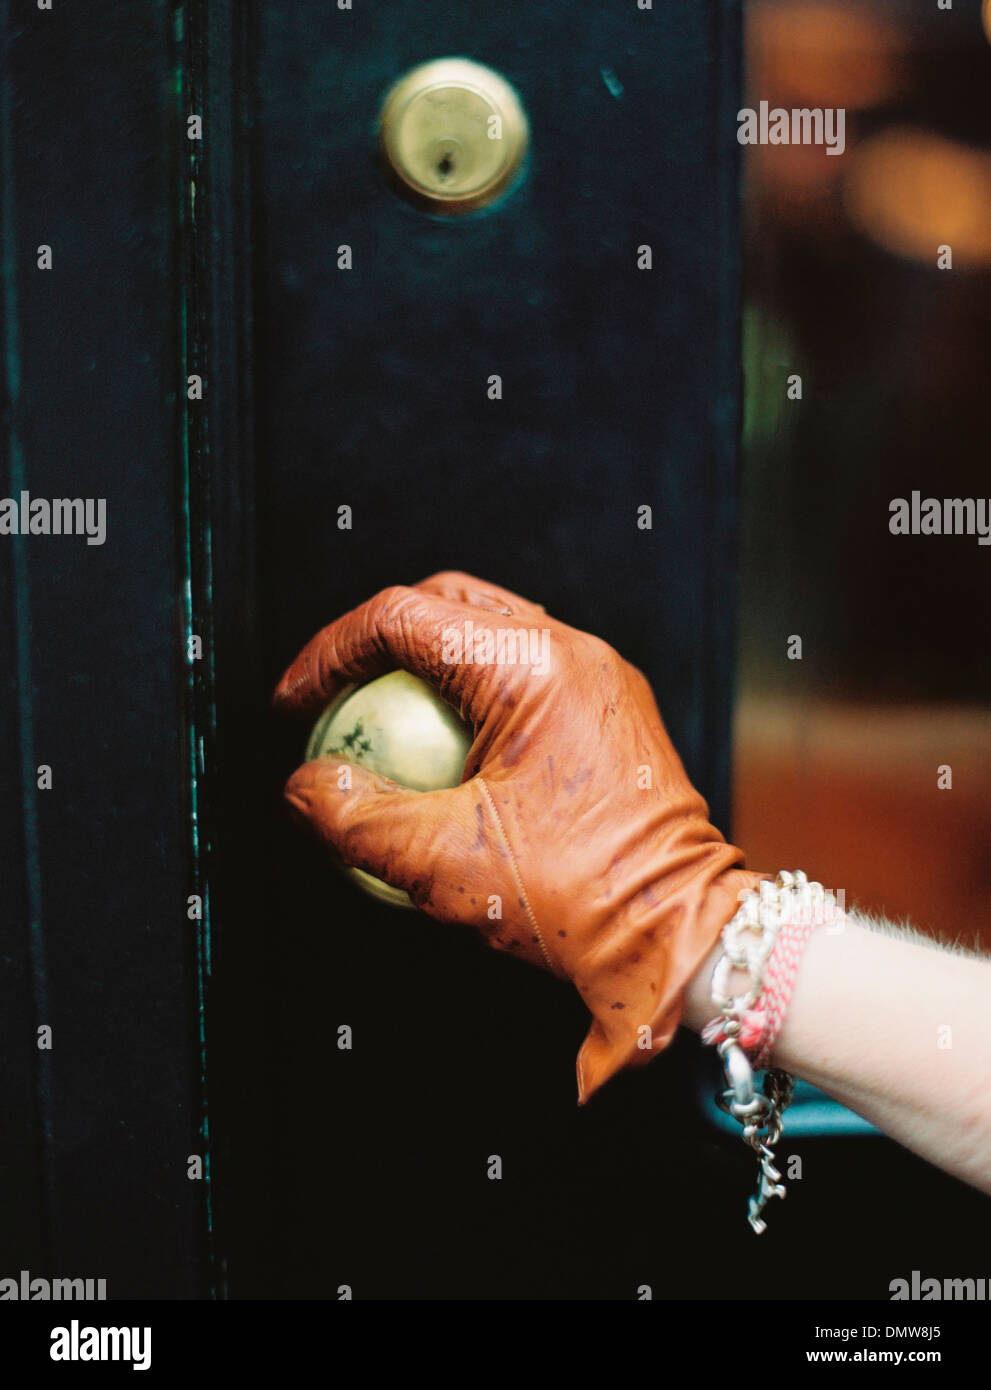 A person wearing a lear glove opening a door. - Stock Image